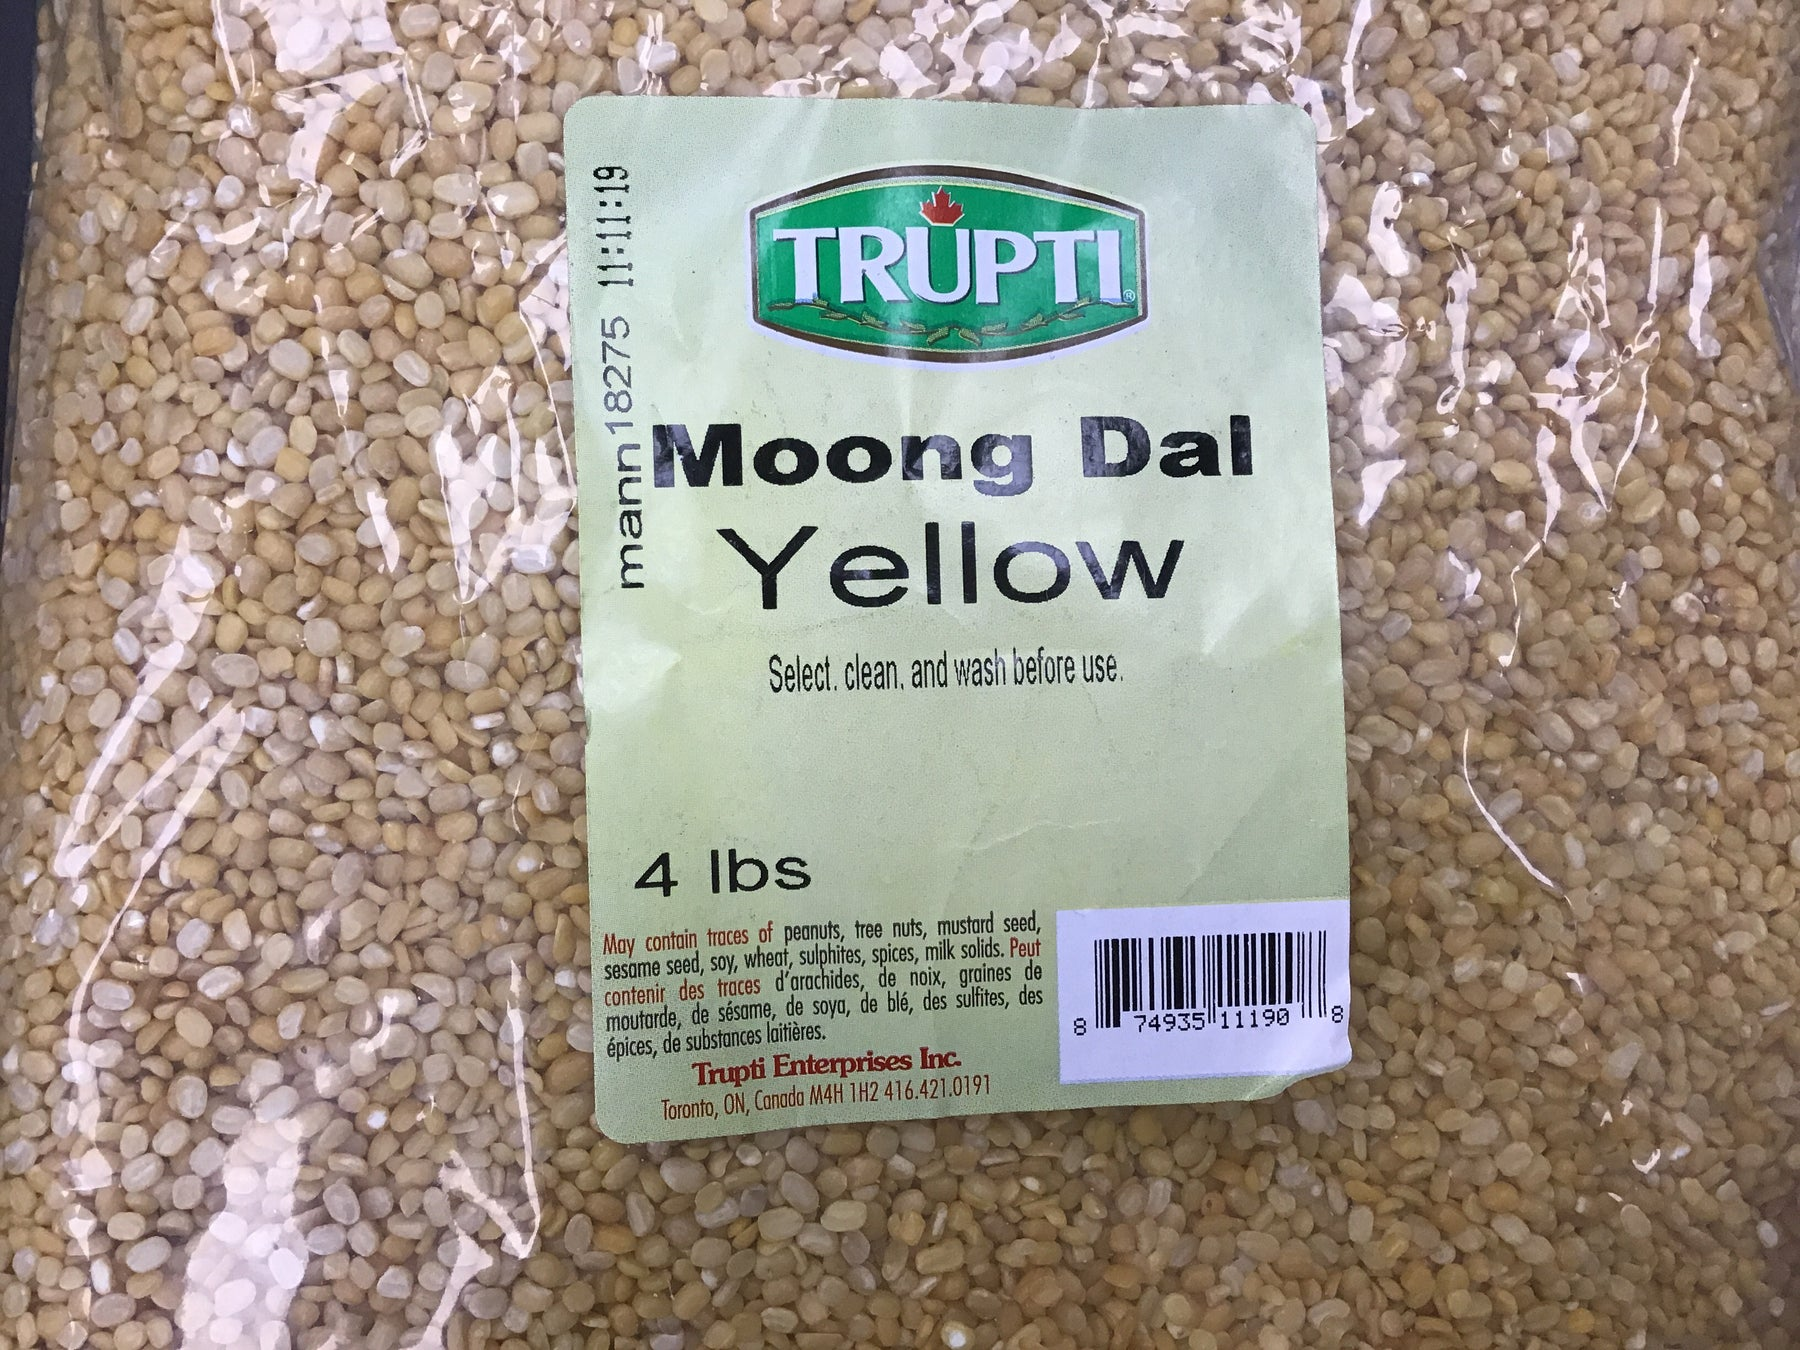 Trupti Moong Dal Yellow 4 LB